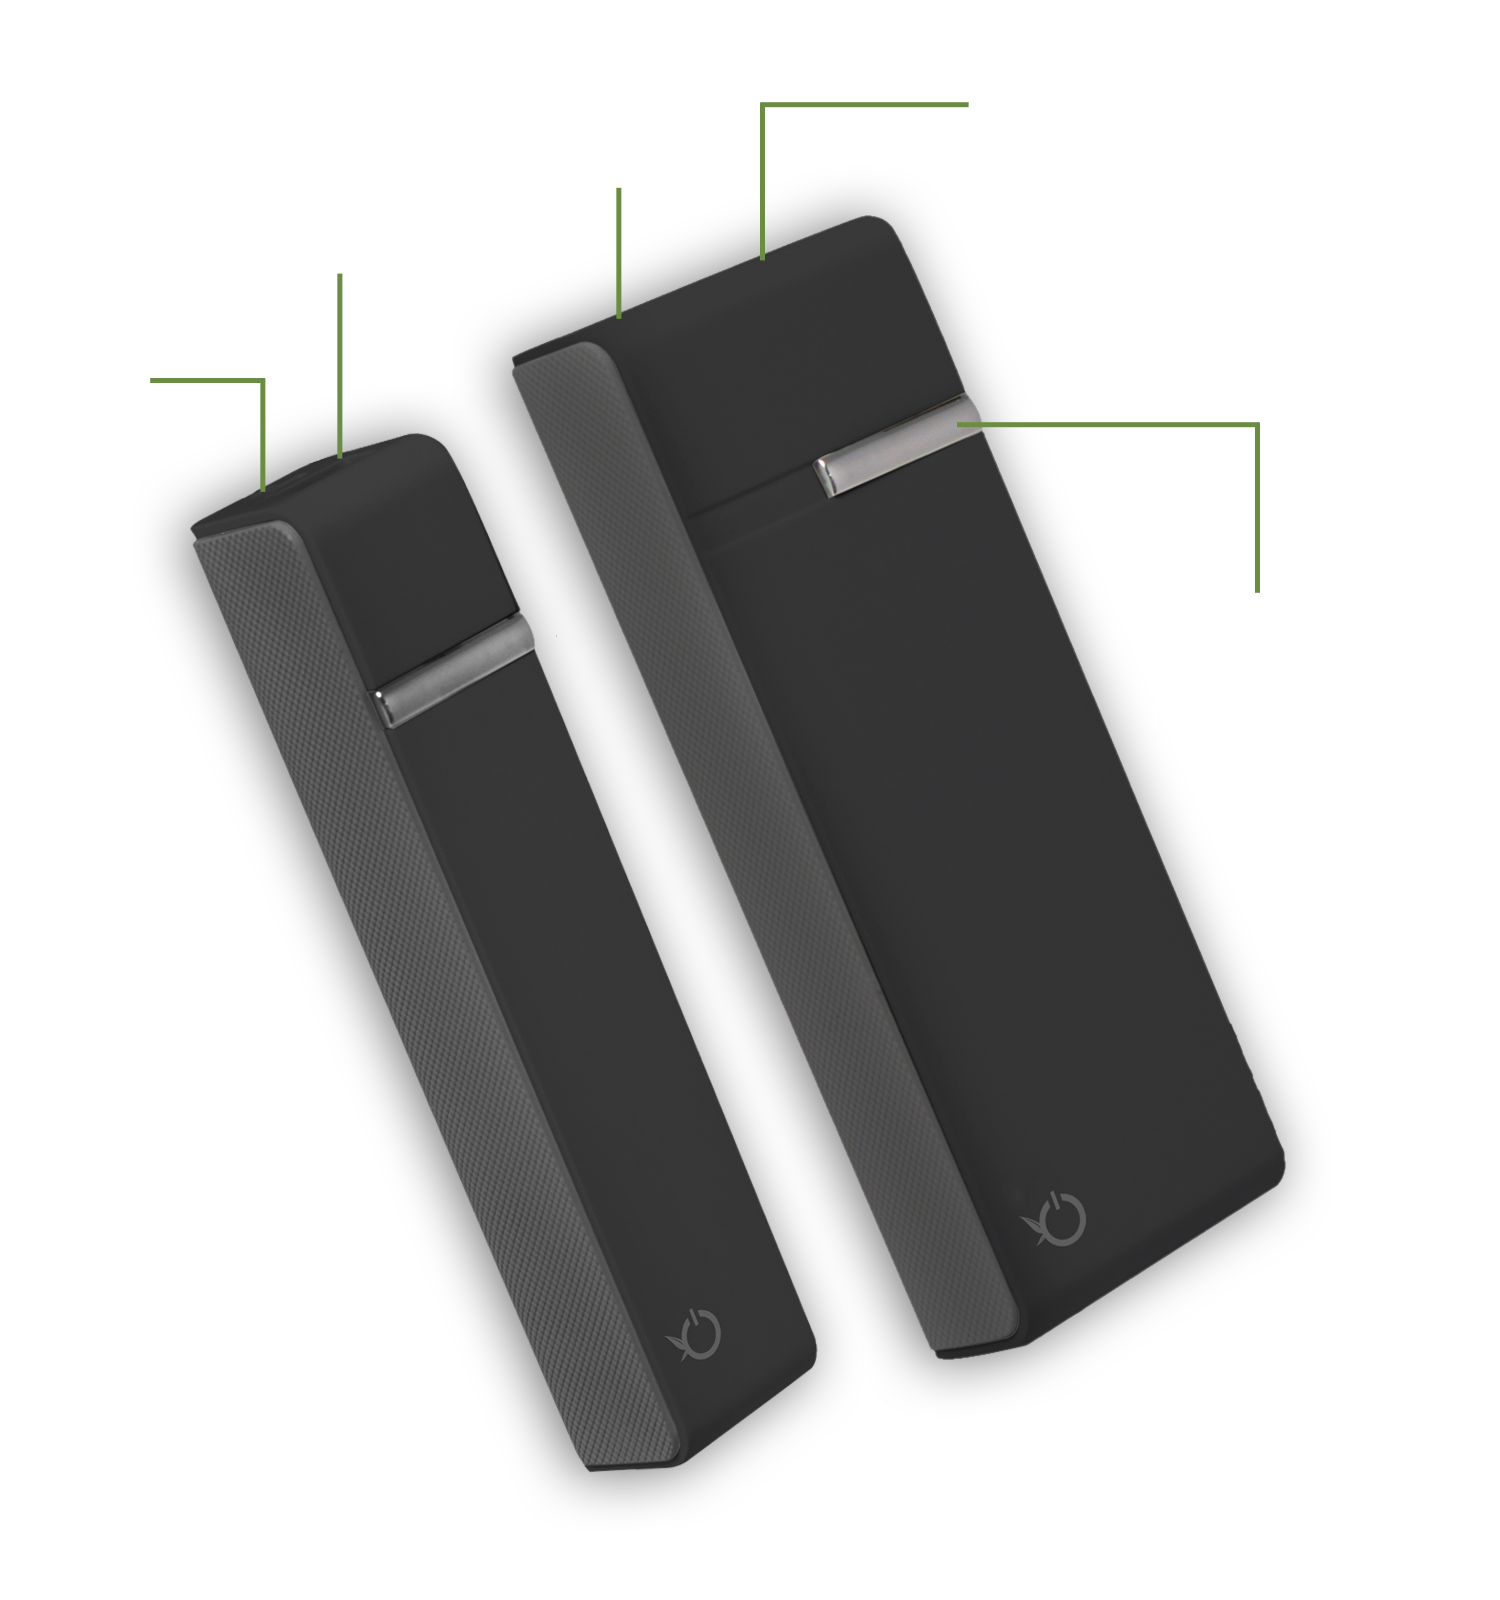 Universal Mobile Chargers